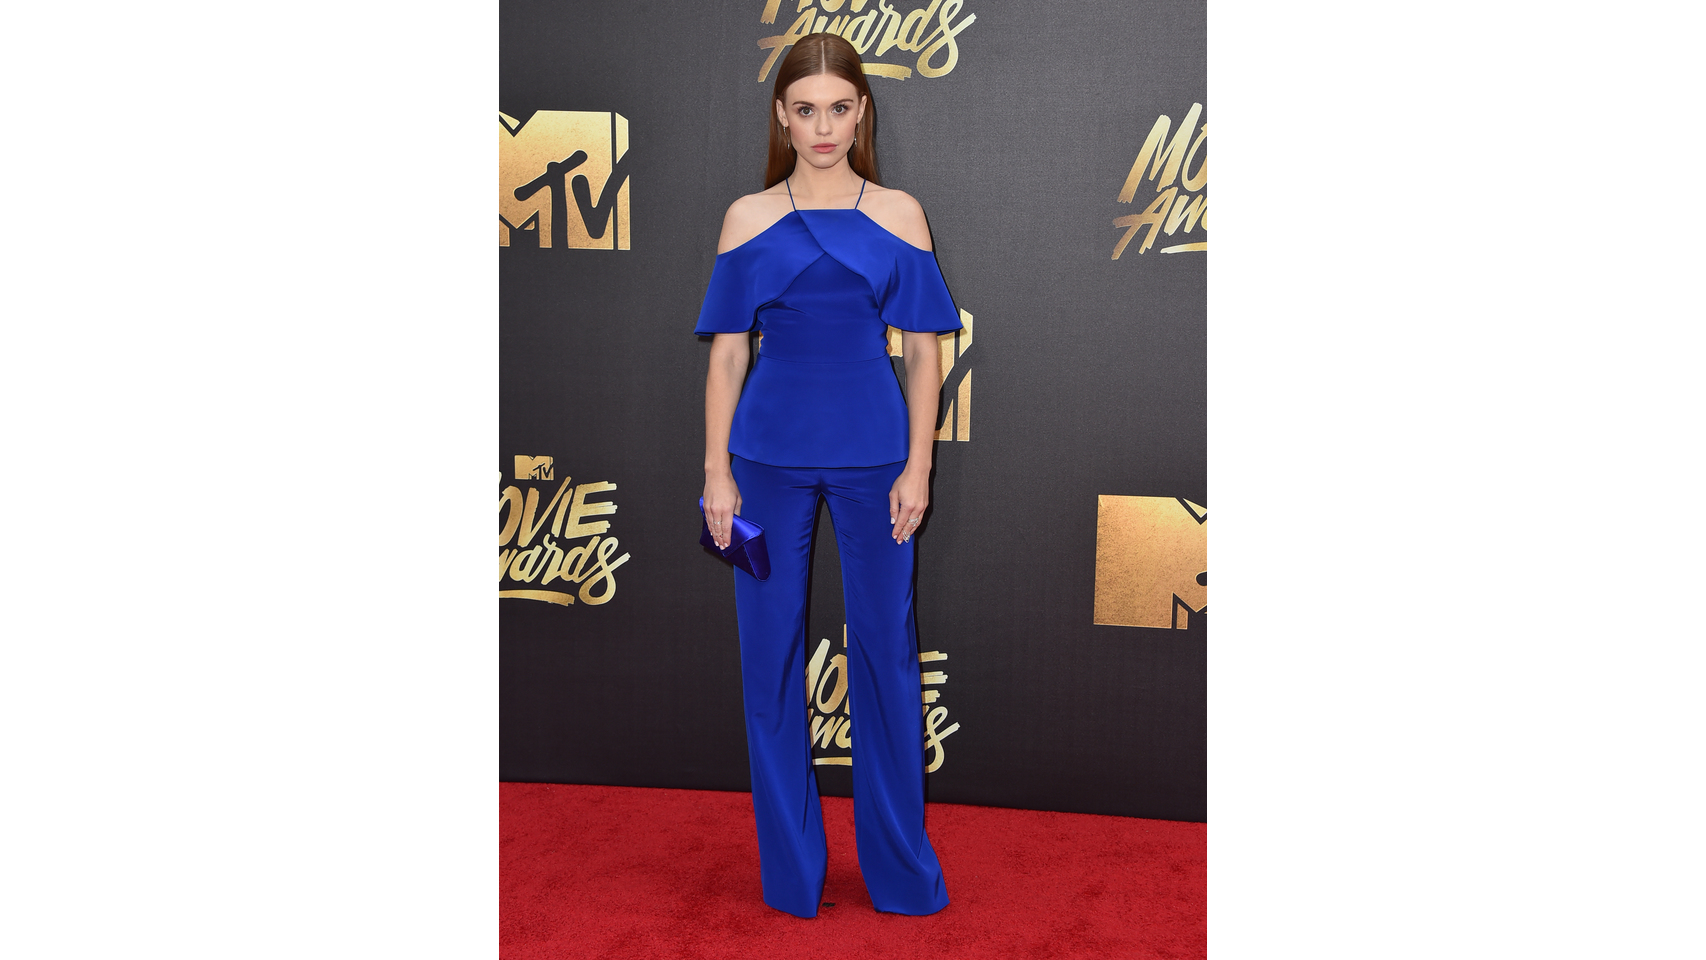 La actriz Holland Roden en los premios MTV Movie Awards de 2016.